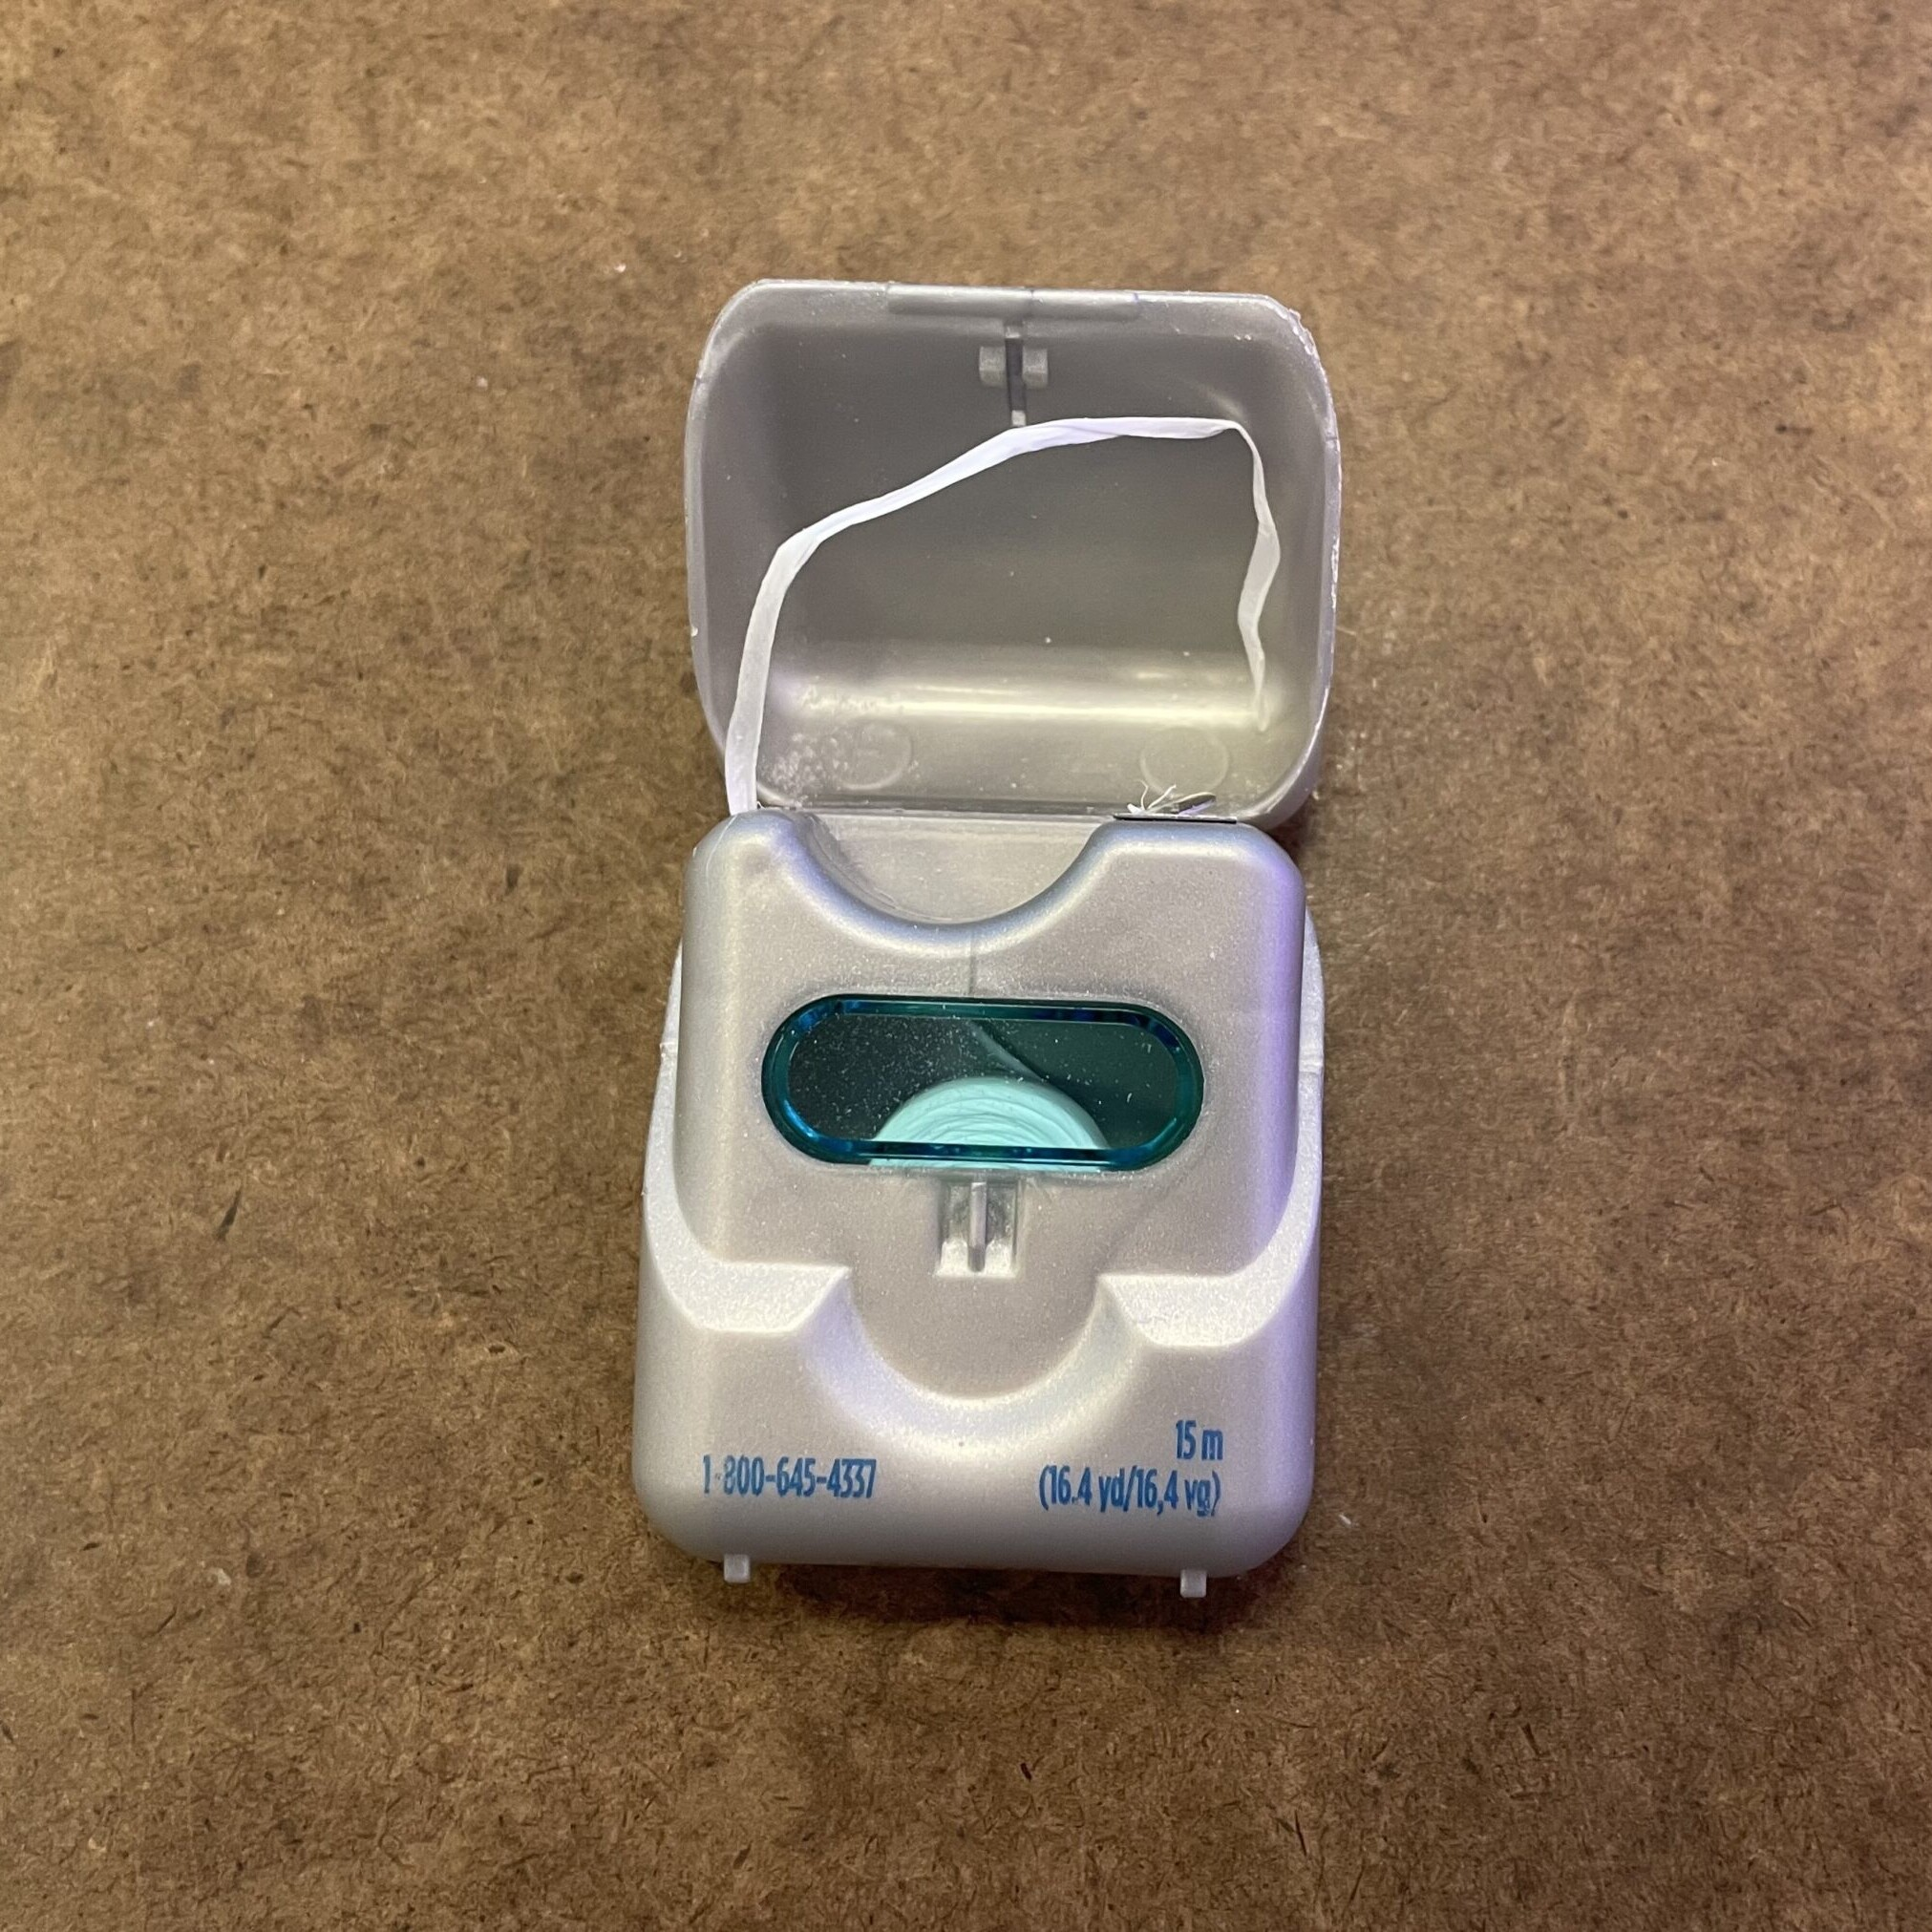 a floss container